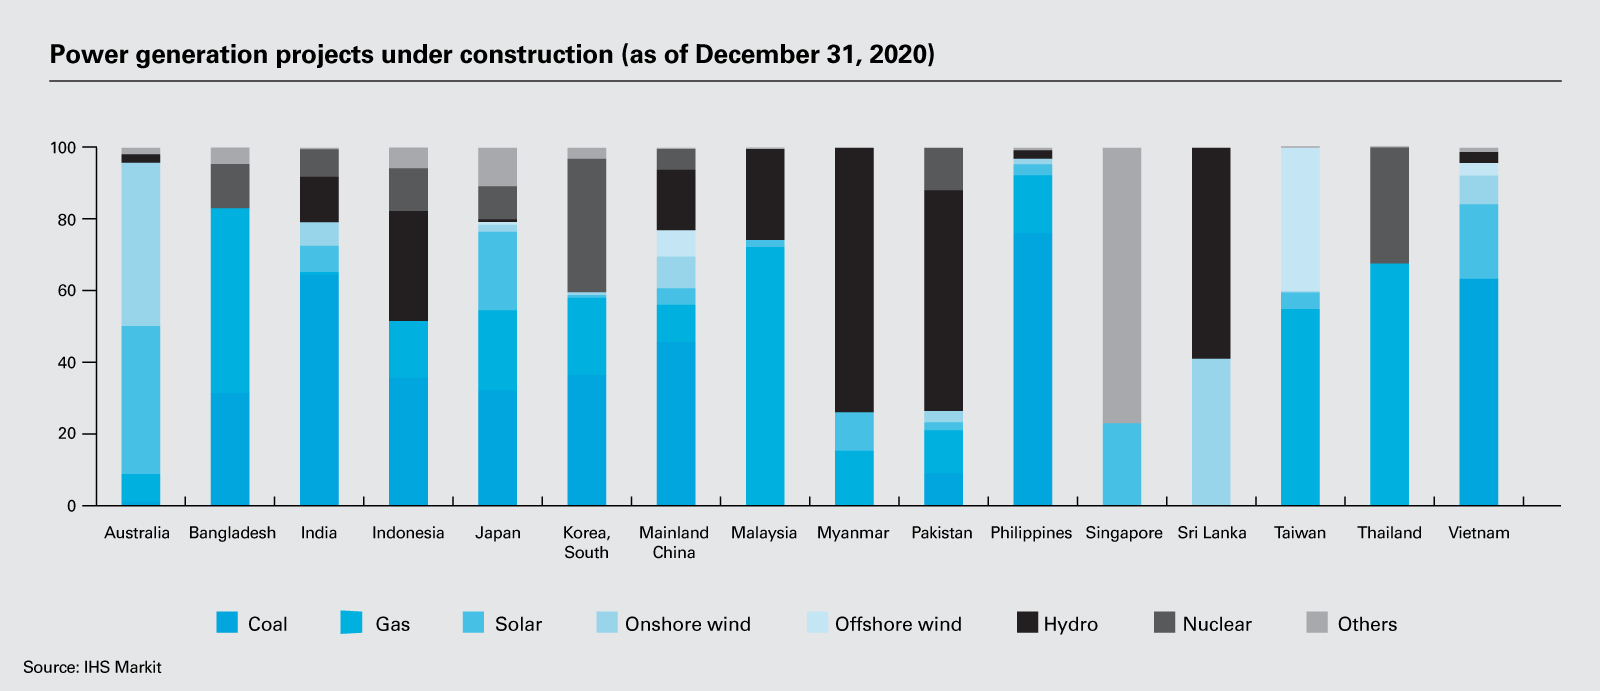 Power generation projects under construction